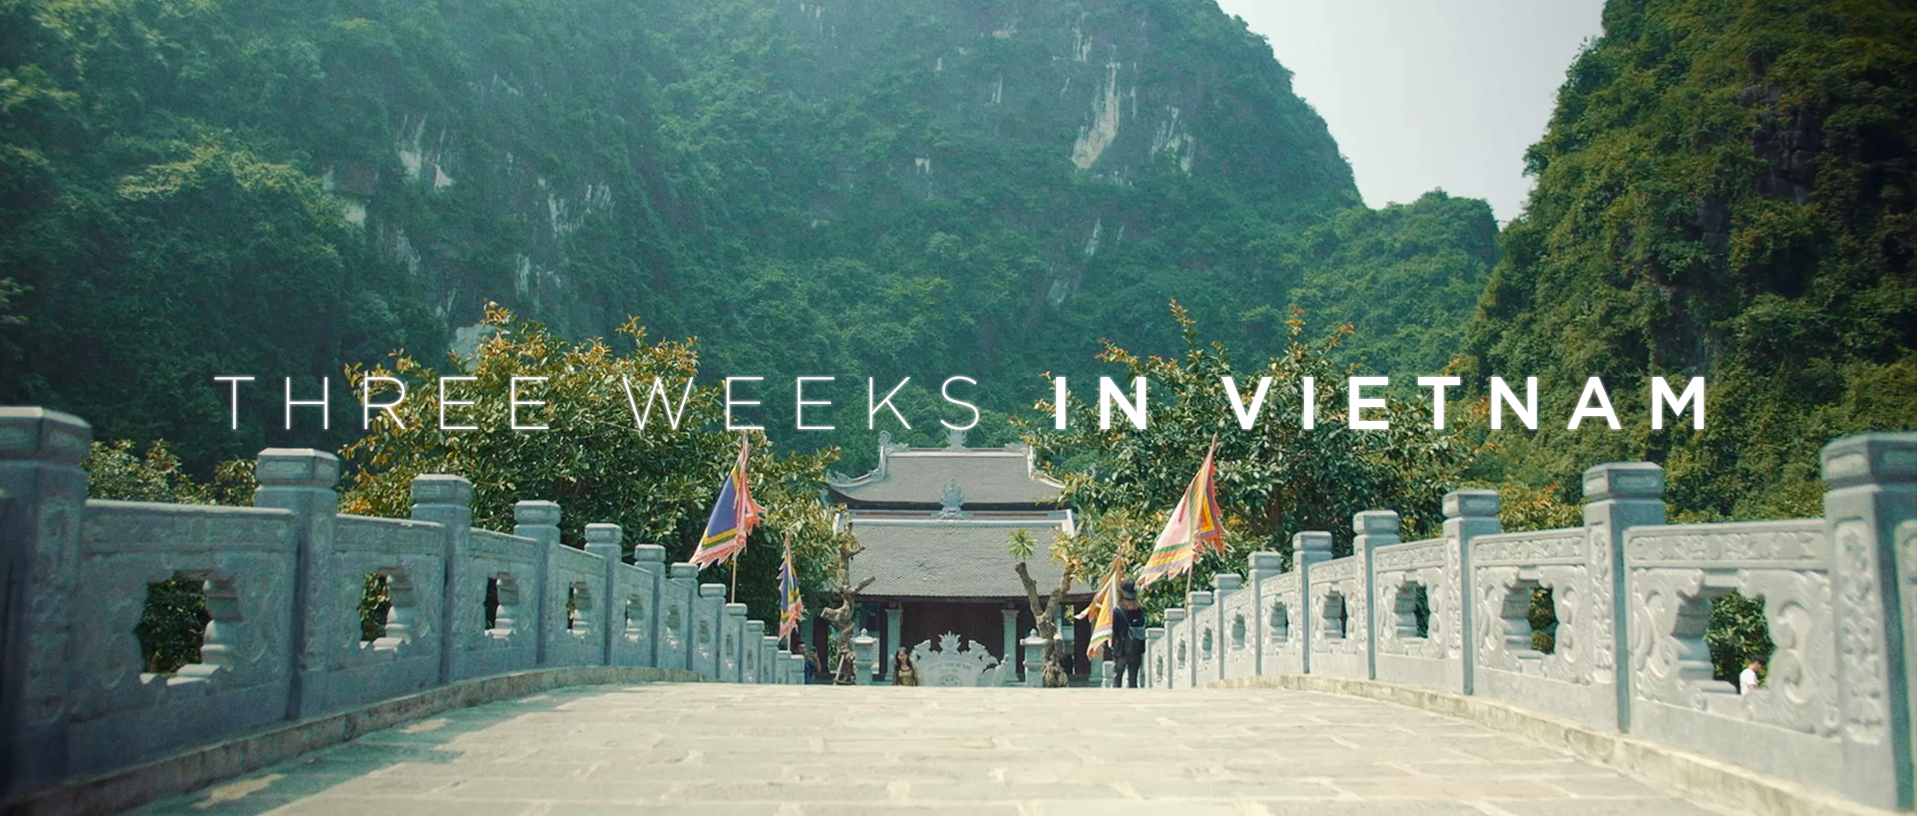 Three weeks in Vietnam